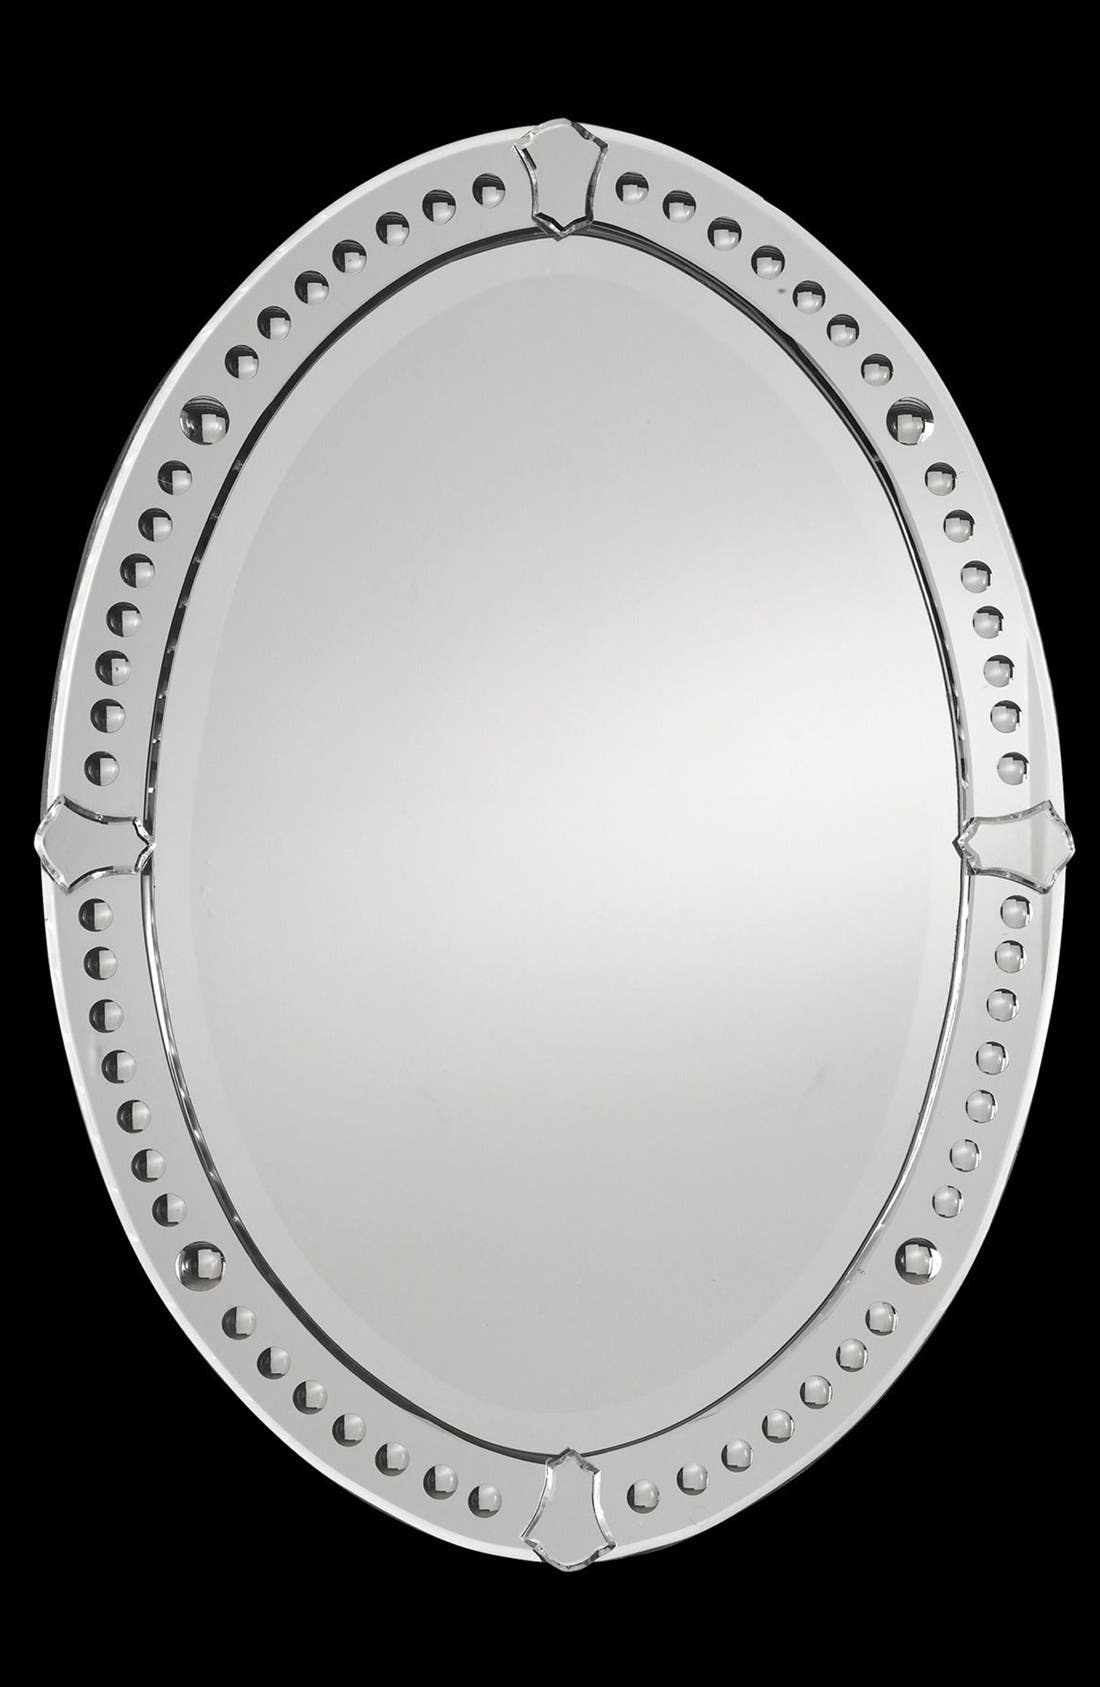 'Graziano' Frameless Oval Mirror,                             Alternate thumbnail 3, color,                             Brown